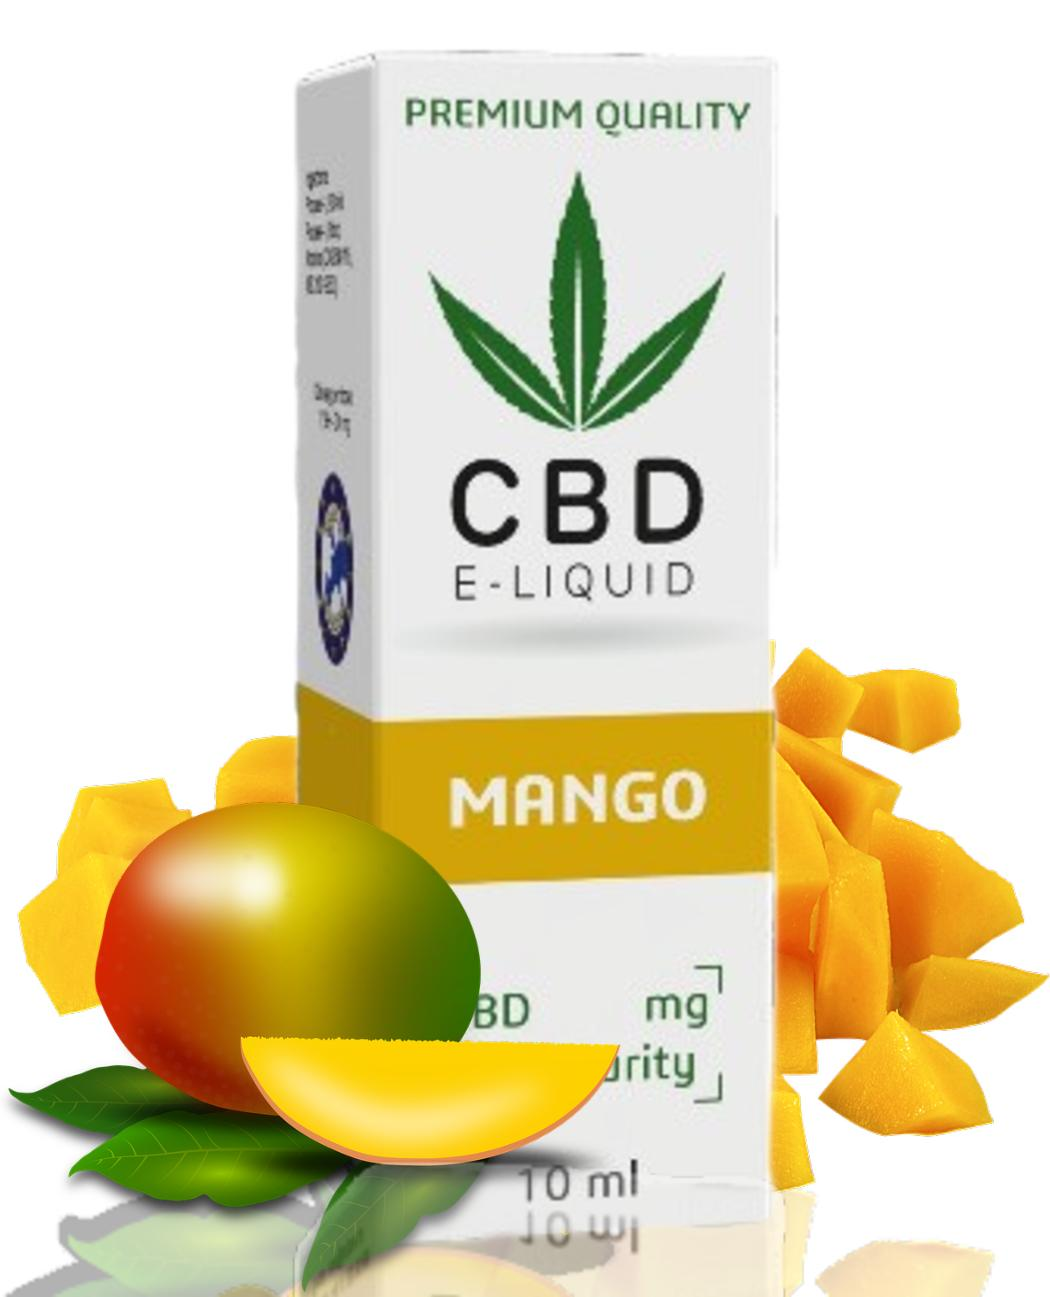 10 ml CBD Vape Liquid - Mango 600mg (6%)